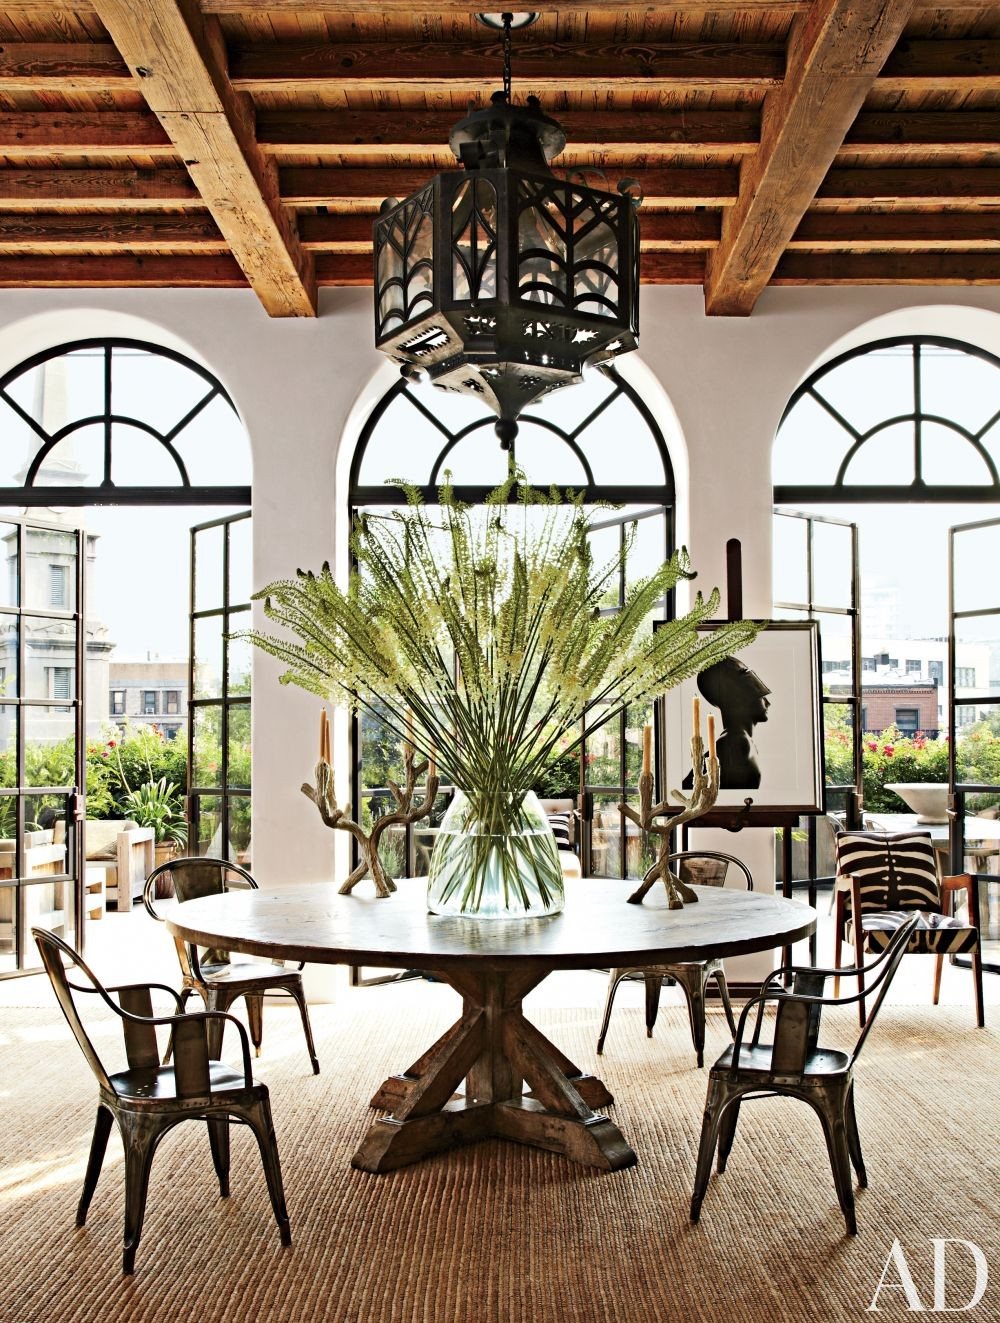 Rustic Dining Room by Alfredo Paredes and Michael Neumann Architecture in New York, New York